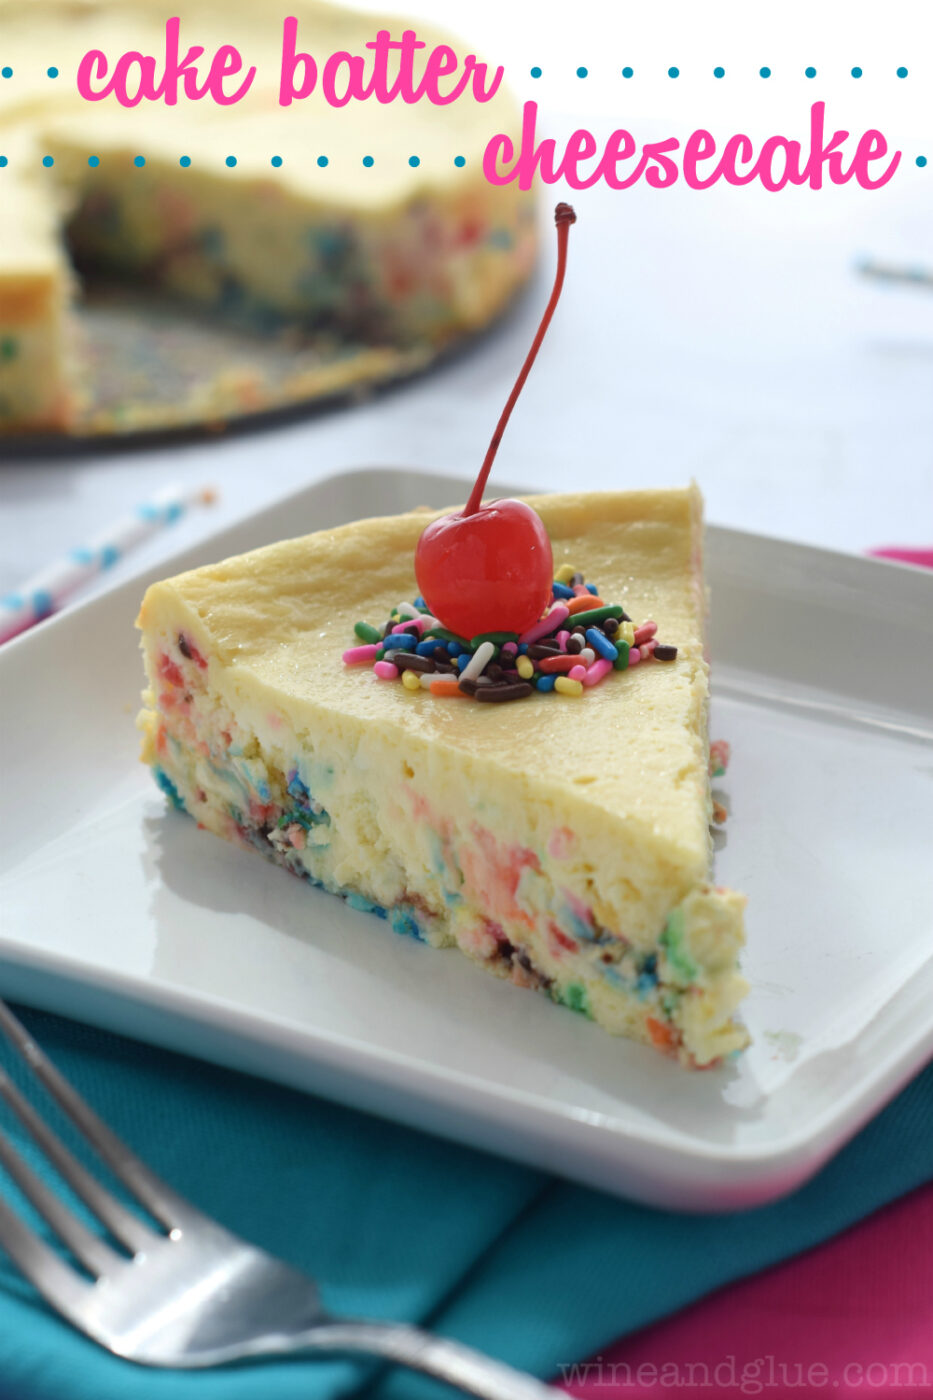 15 Delicious Desserts You Can Make With Cake Batter